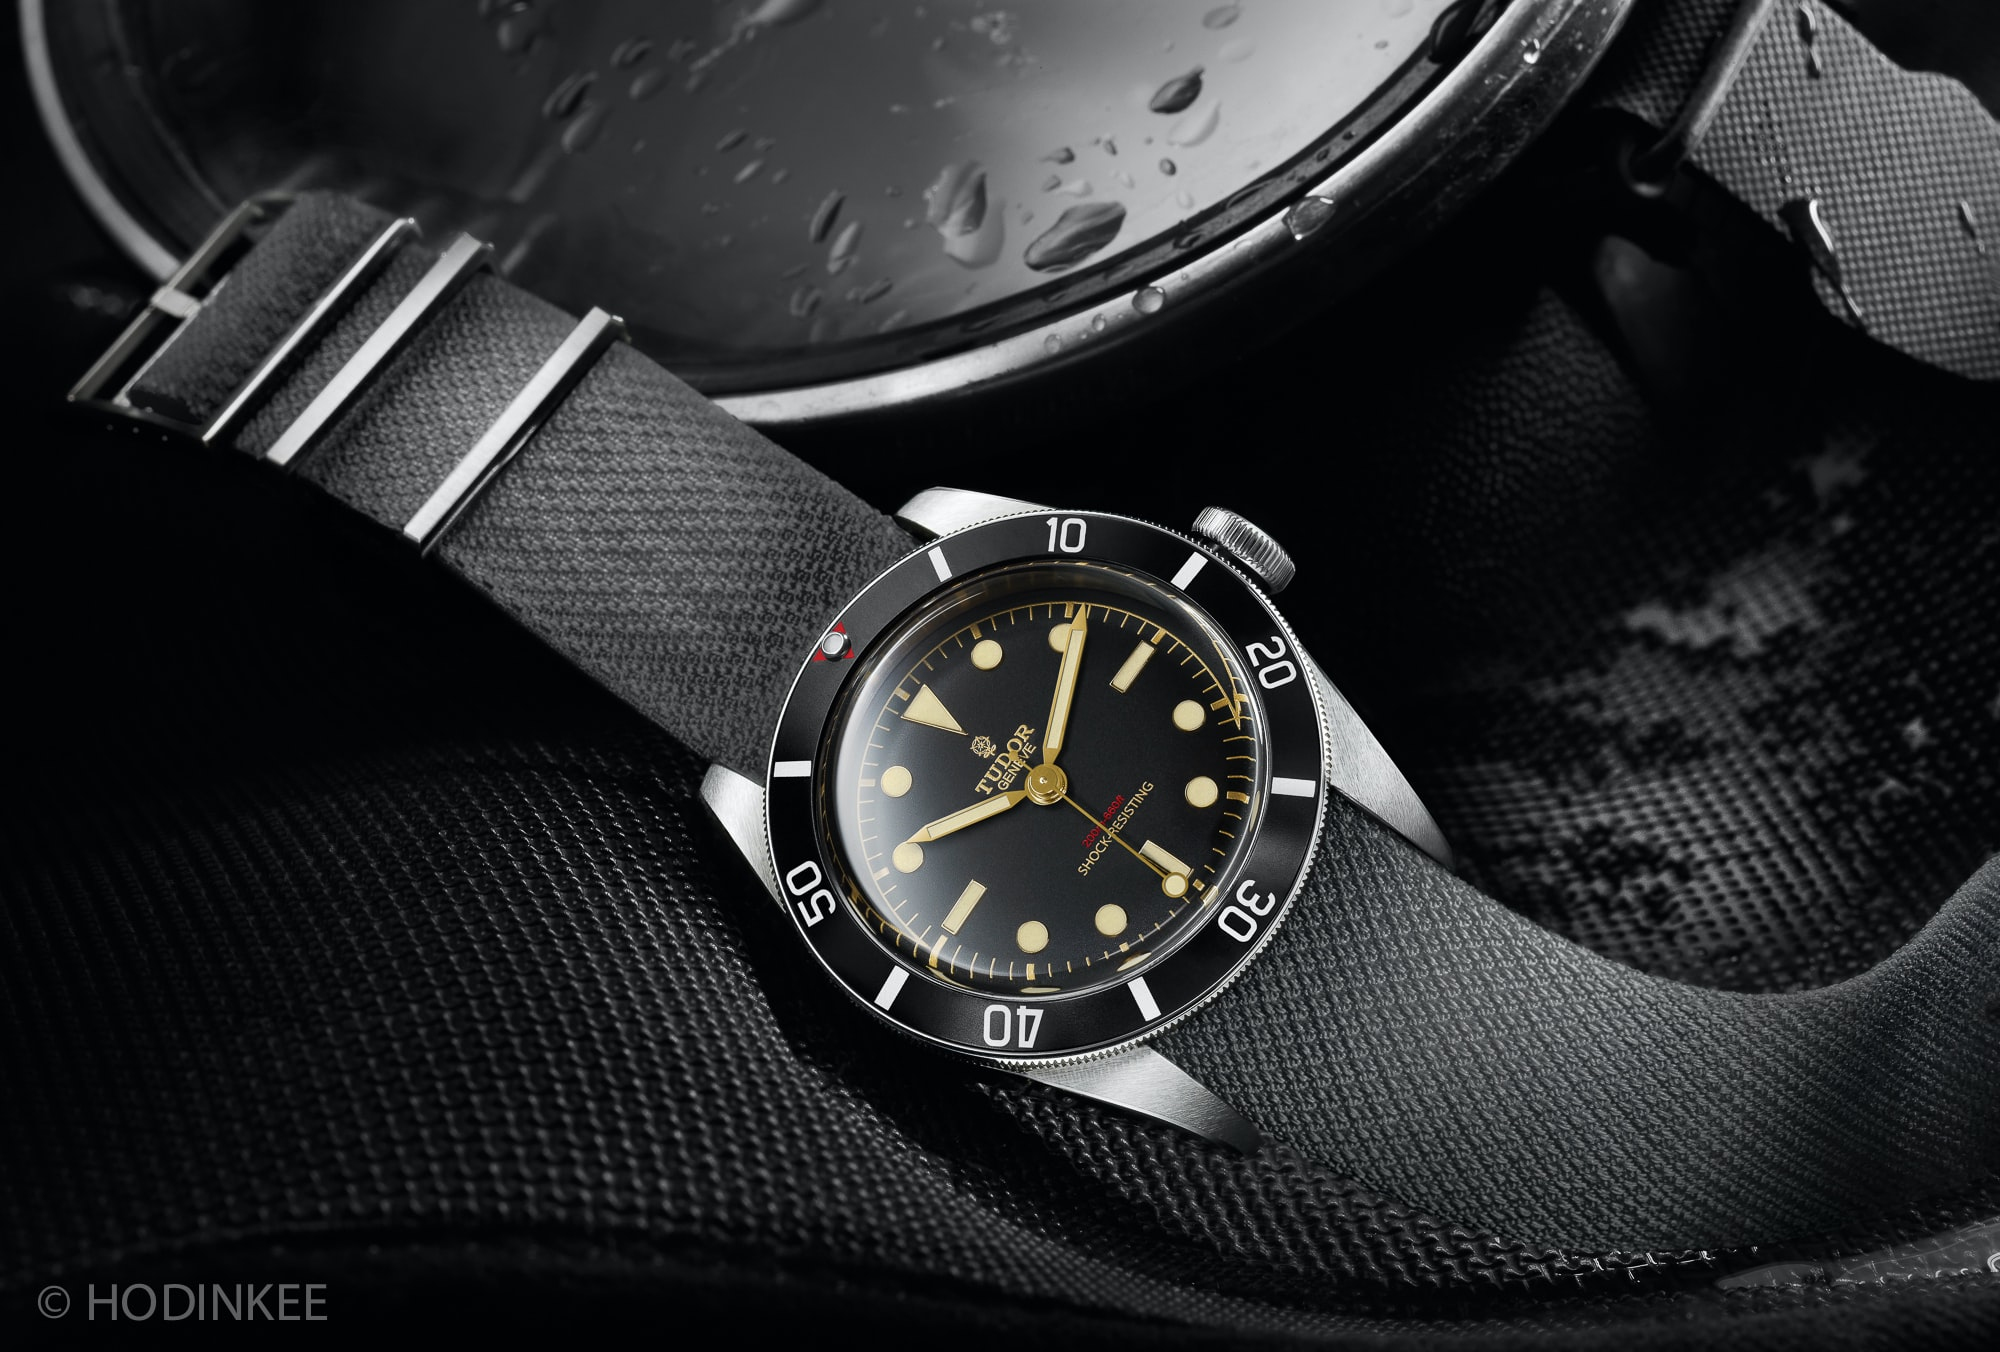 The Tudor Heritage Black Bay One Reference 7923/001, A Unique Reference For Only Watch